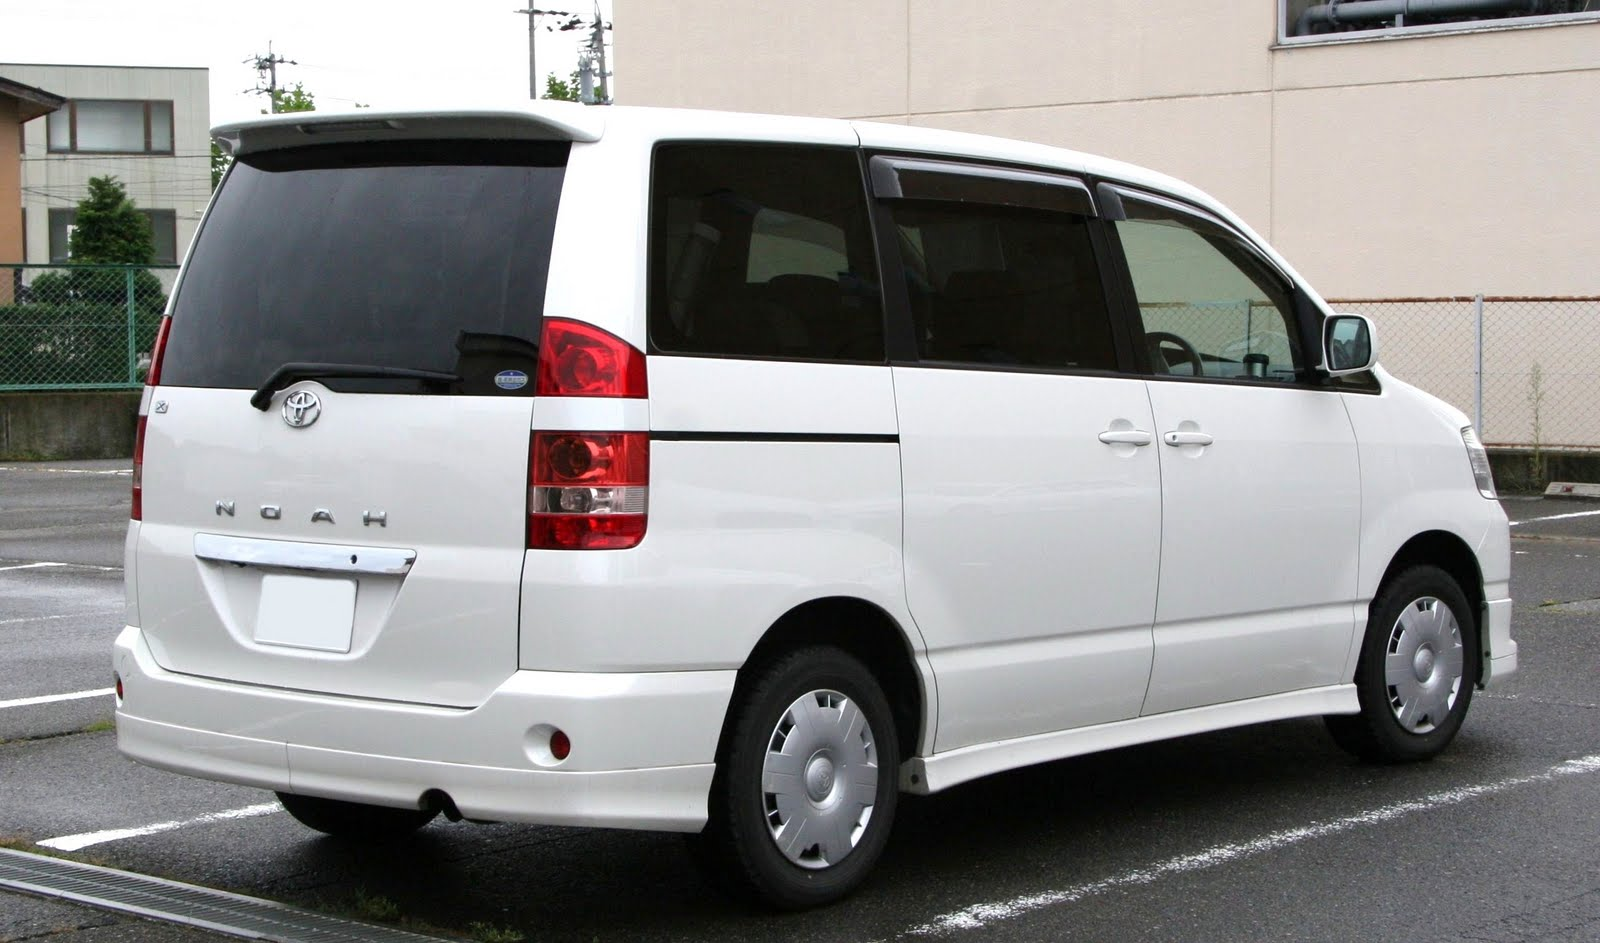 medium resolution of the rear view of the noah toyota voxy